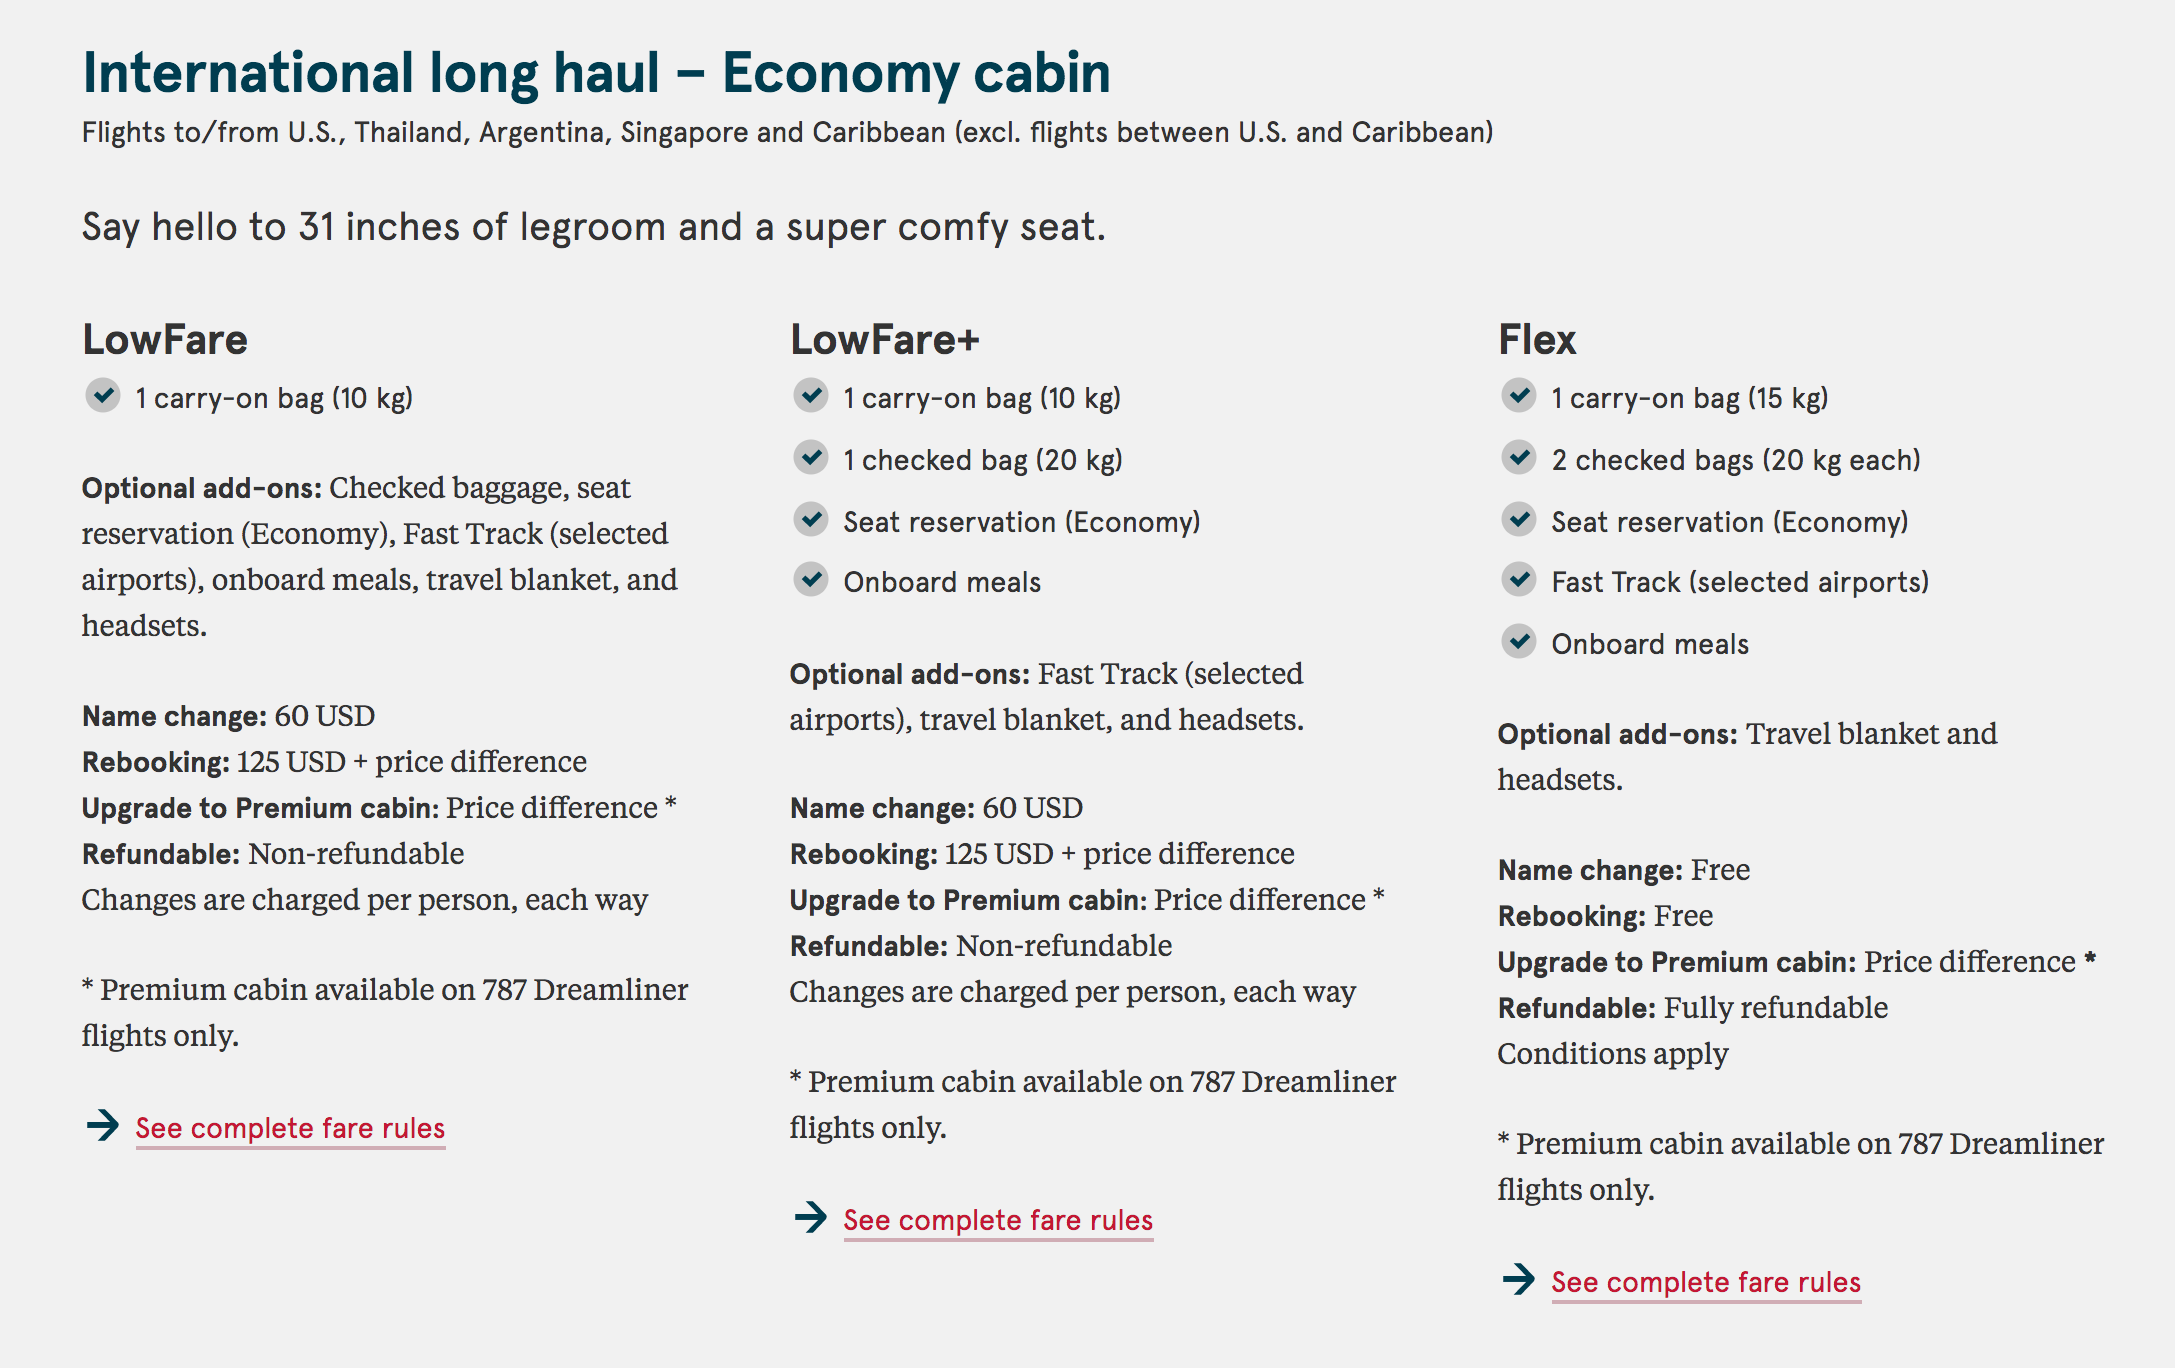 Norwegian Airlines, International Long-Haul Economy Fares